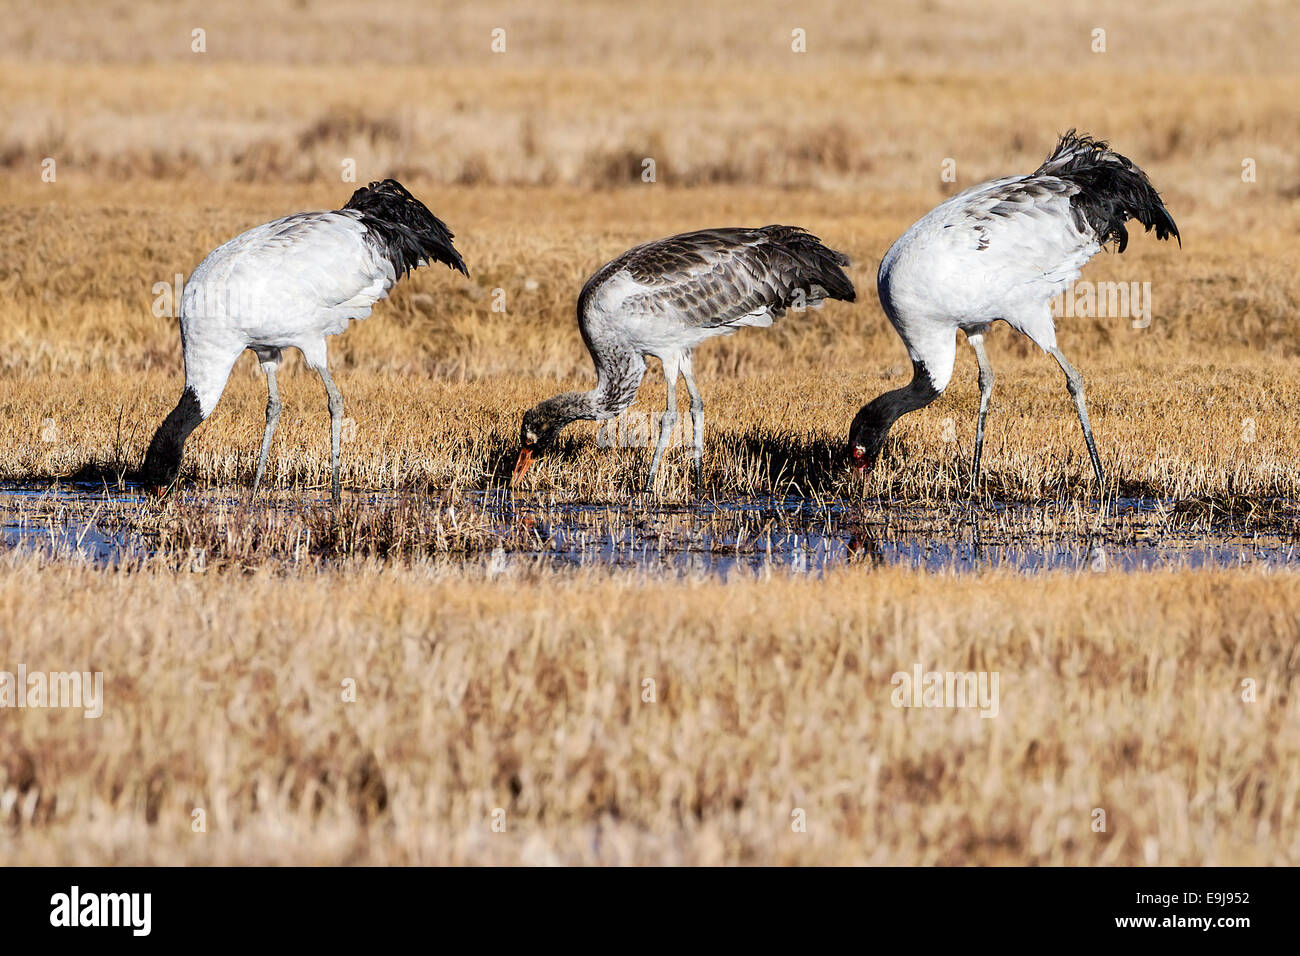 Black-necked Crane (Grus nigricollis) family foraging together at winter feeding ground, Lake Napa, Yunnan, China - Stock Image